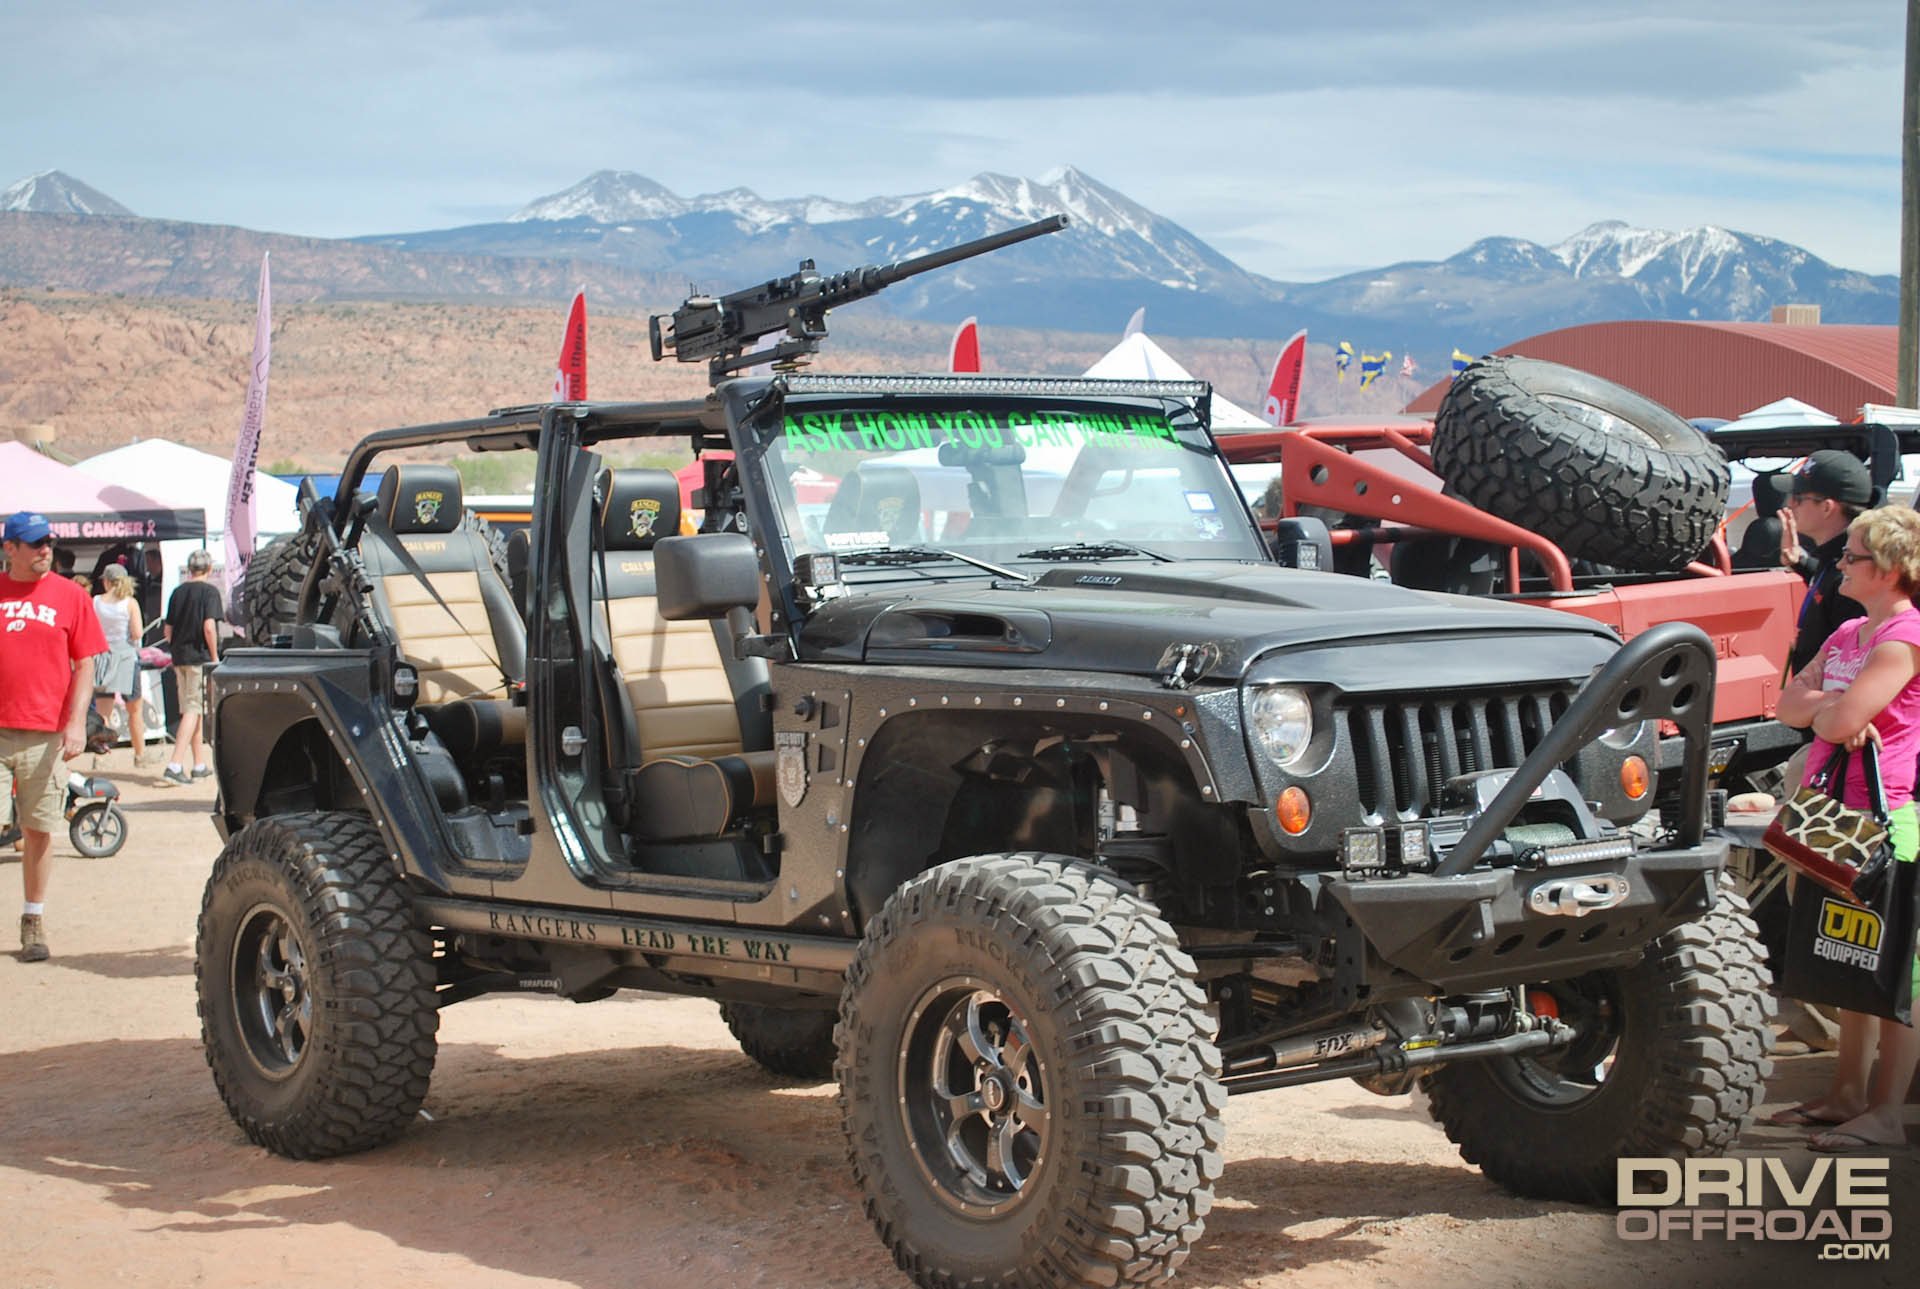 Jeep Wrangler JK - Rangers Lead The Way | Flickr - Photo Sharing!